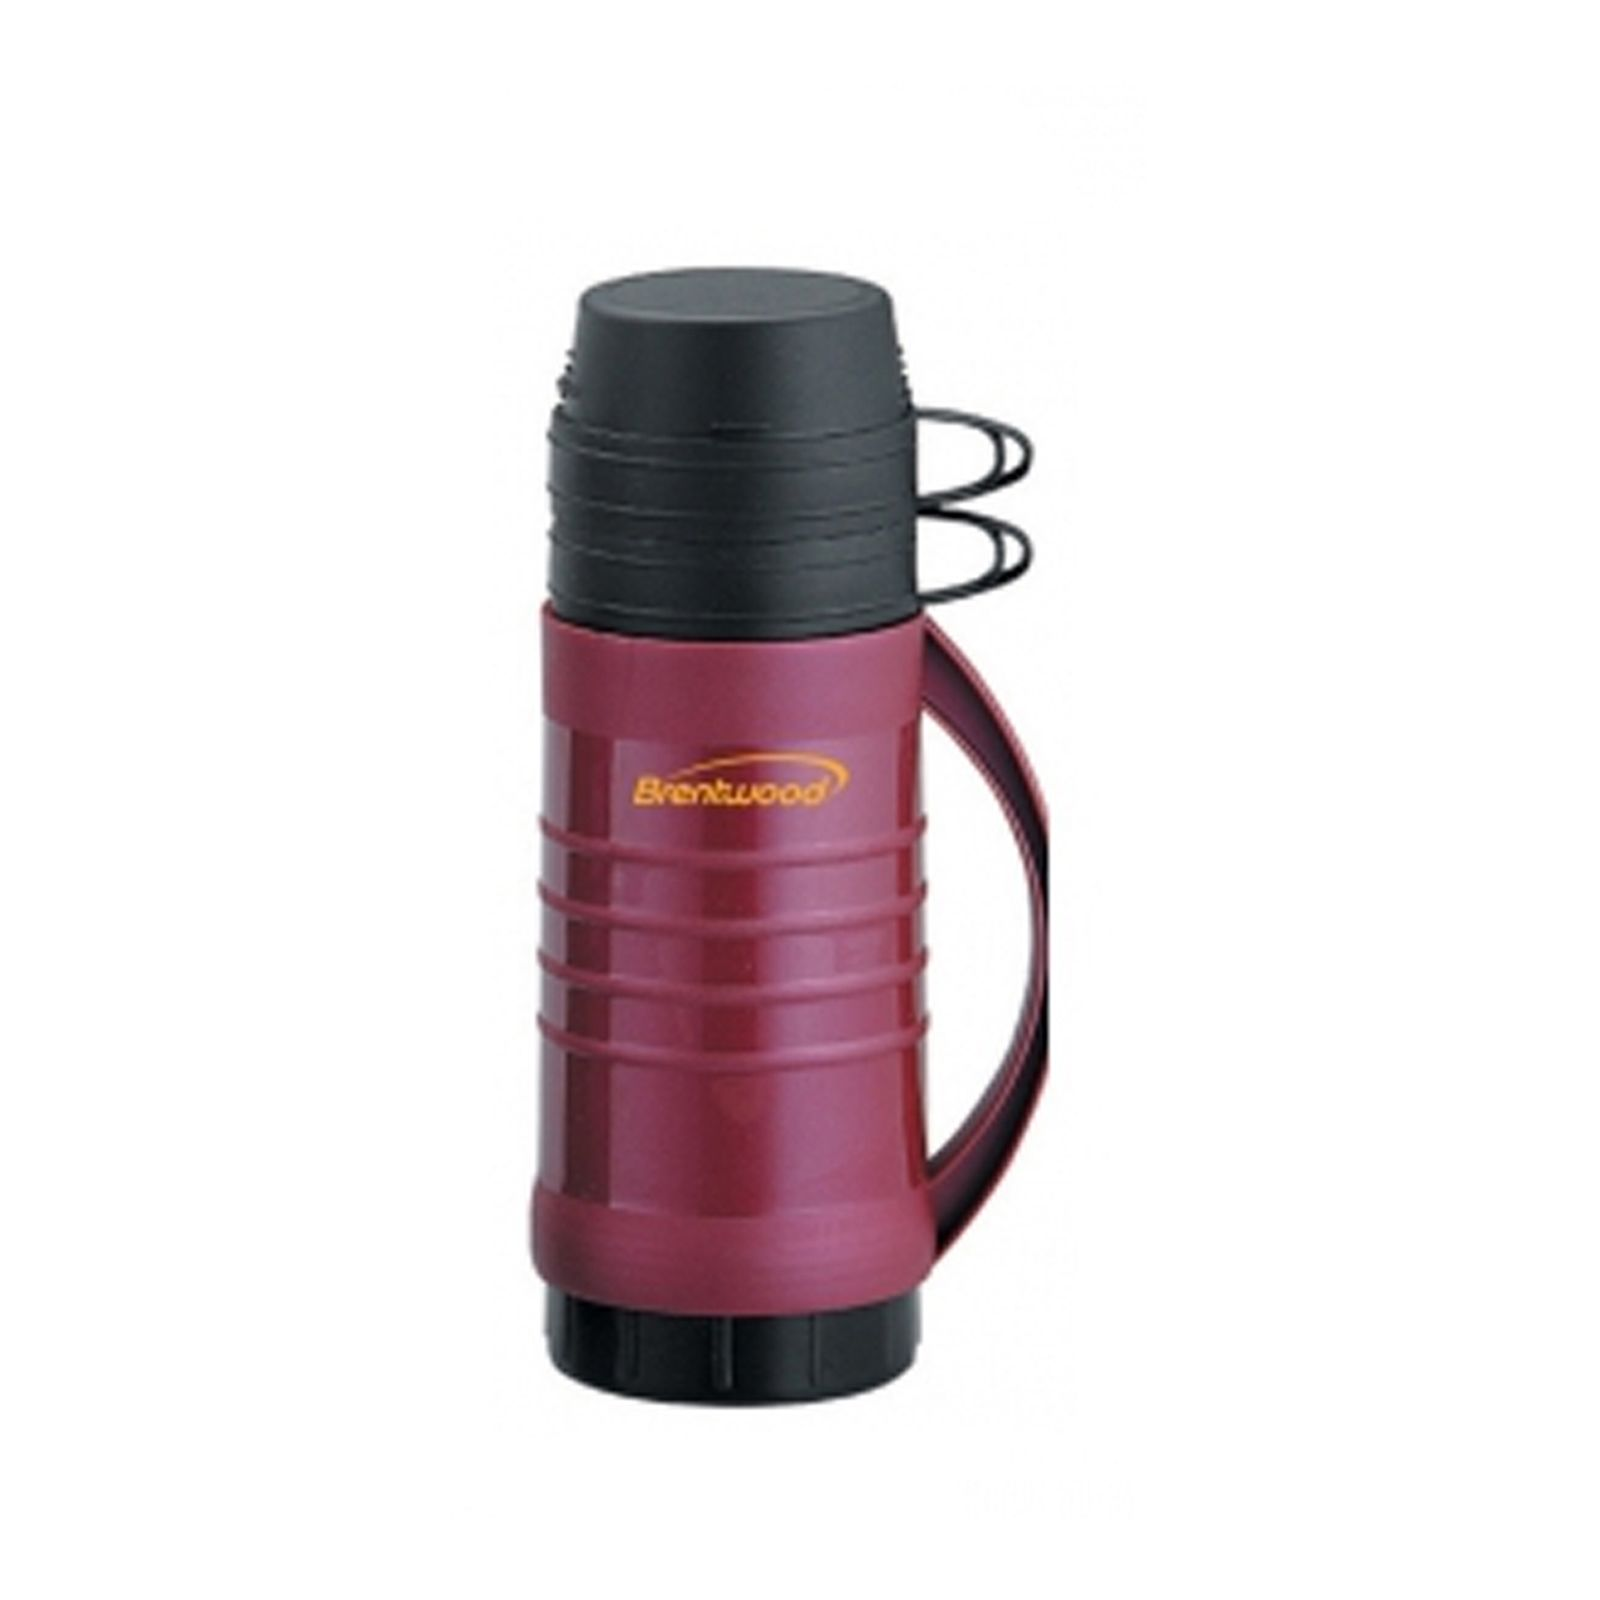 Brentwood 18l plastic coffee thermos coffee thermos